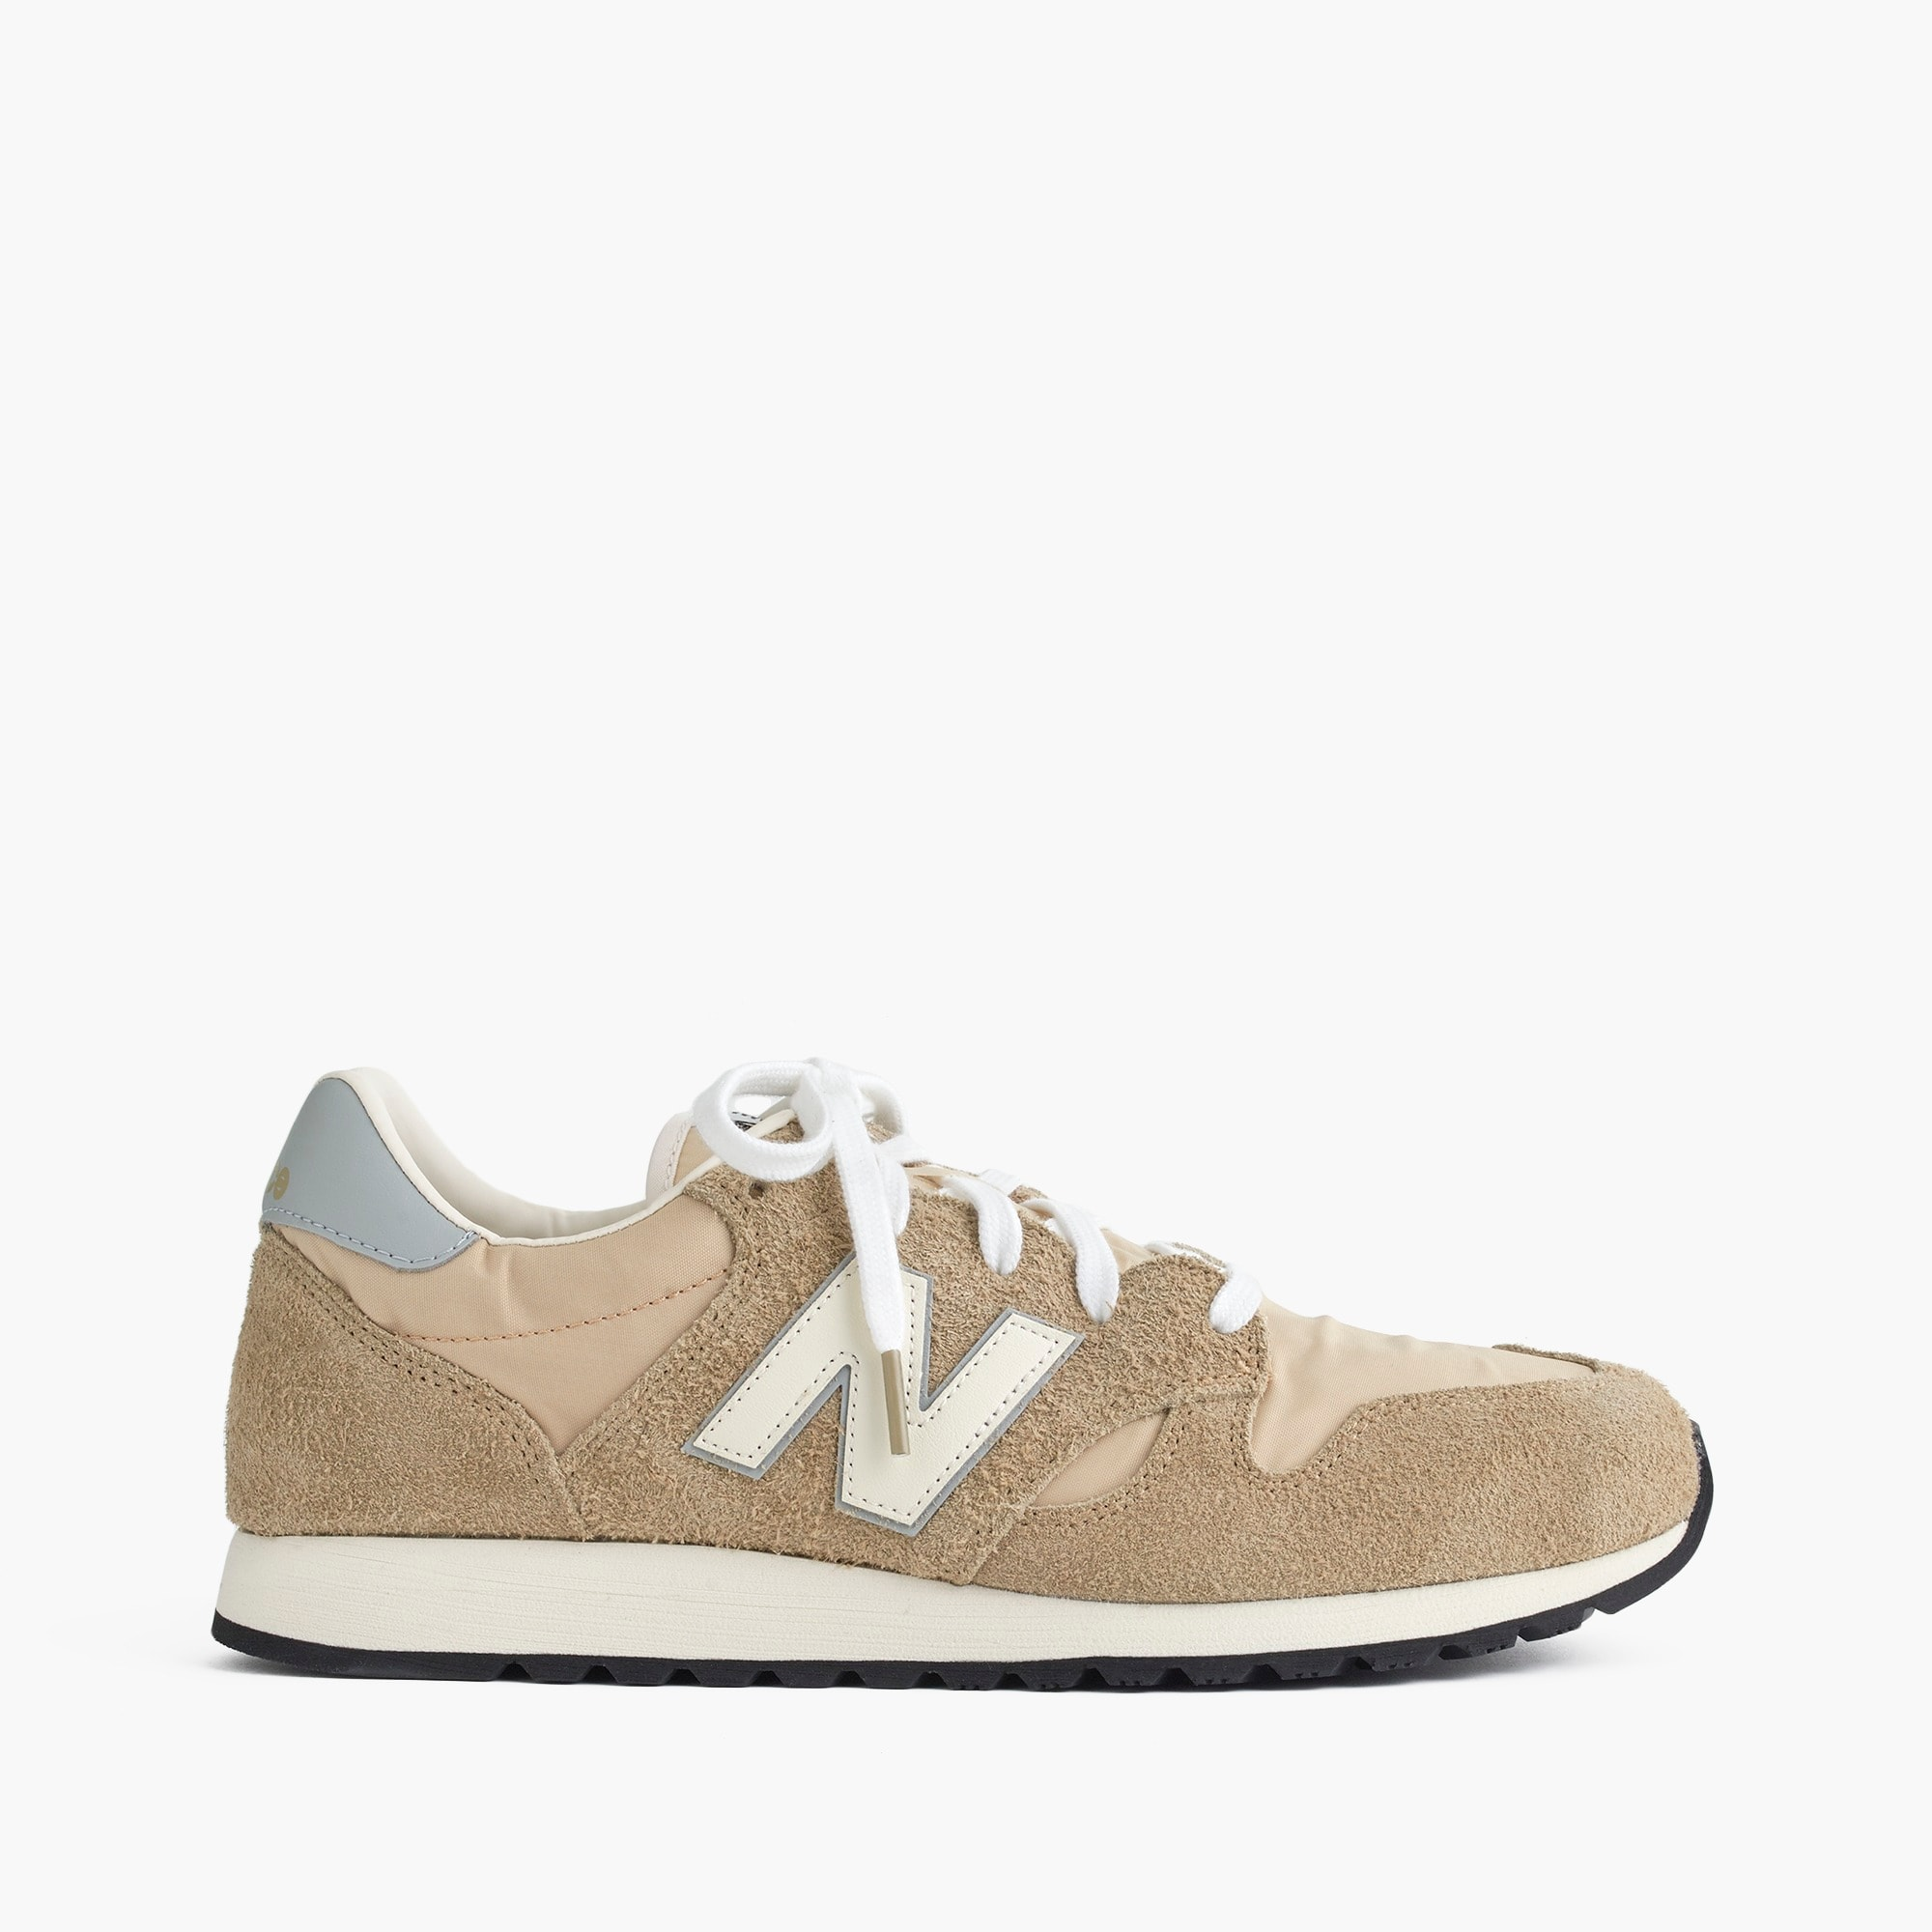 Image 3 for New Balance® for J.Crew 520 sneakers in hairy suede